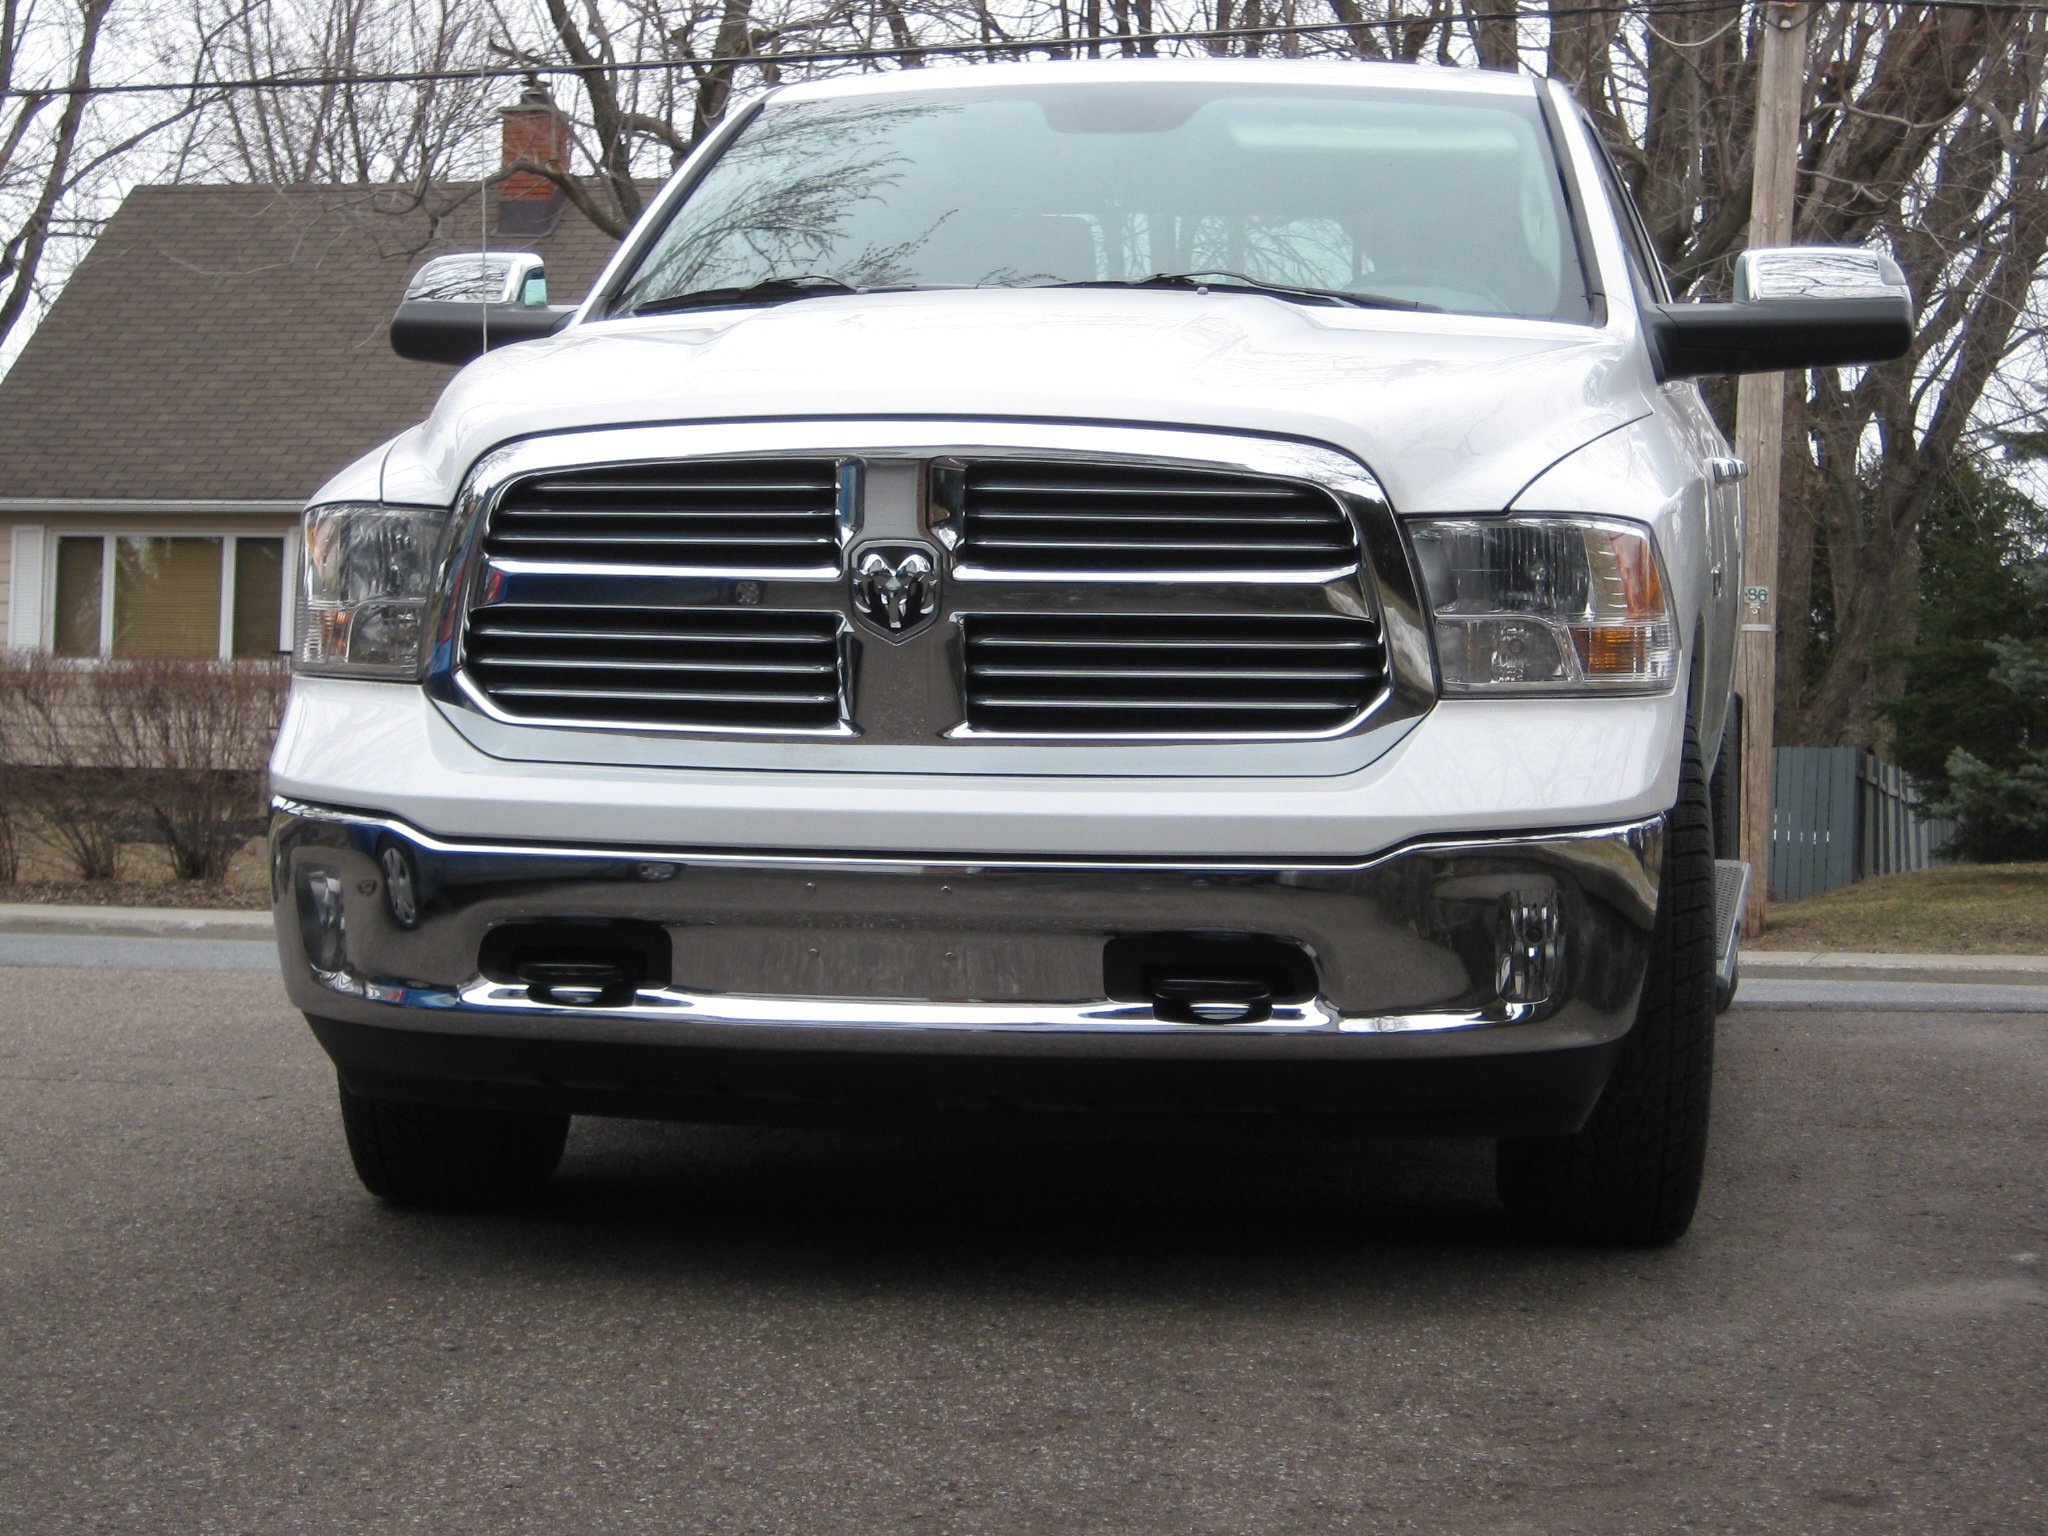 Towing Capacity 2018-mon-truck-front-clean.jpg